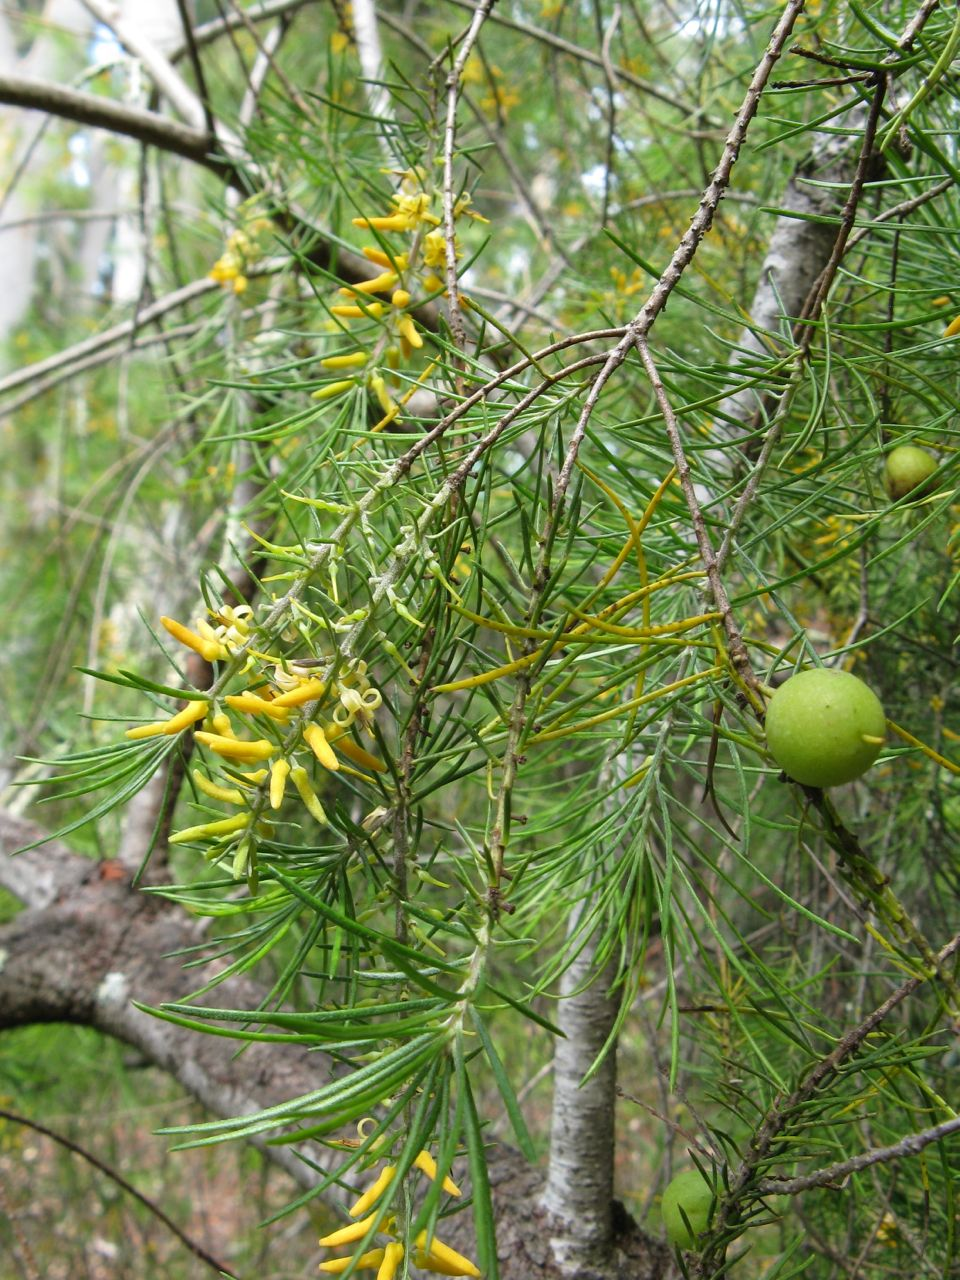 Agriculture Department Persoonia Pinifolia - Wikispecies